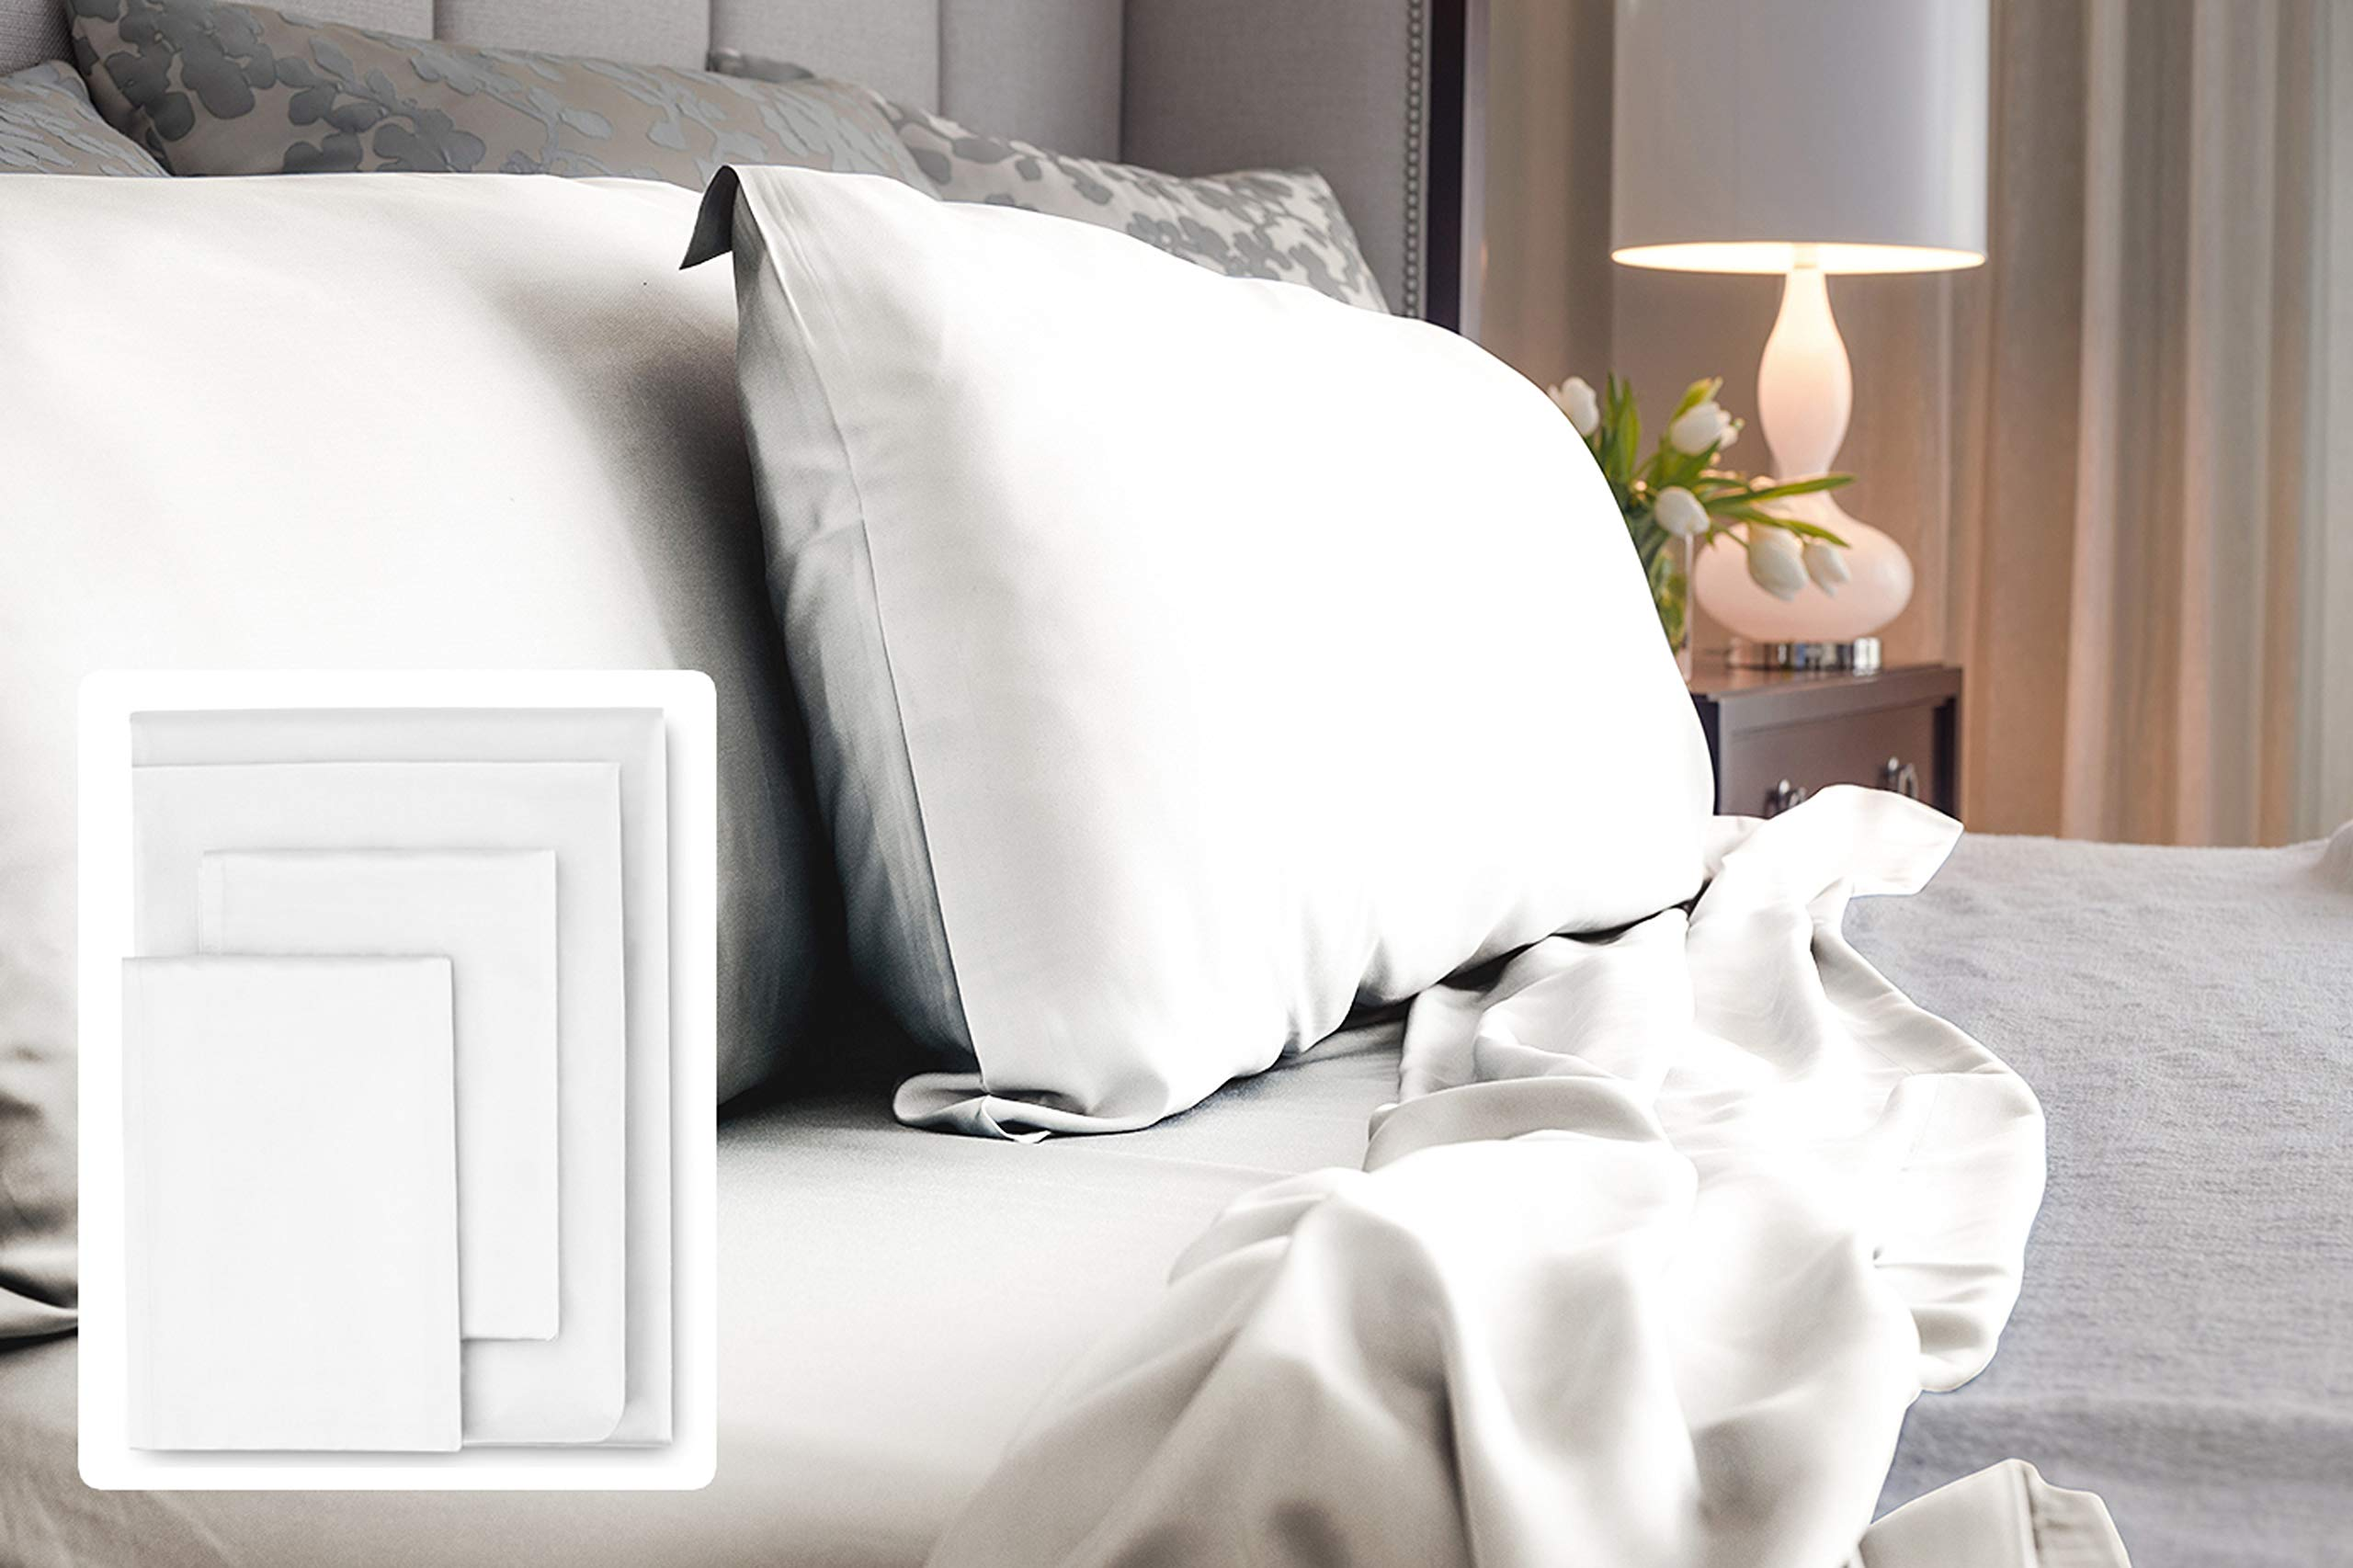 LUXOME 100% Bamboo Sheet Set | King Size | 400tc Luxury Bamboo | White | 4-Piece Set (Fitted, Flat, 2 Pillowcases)